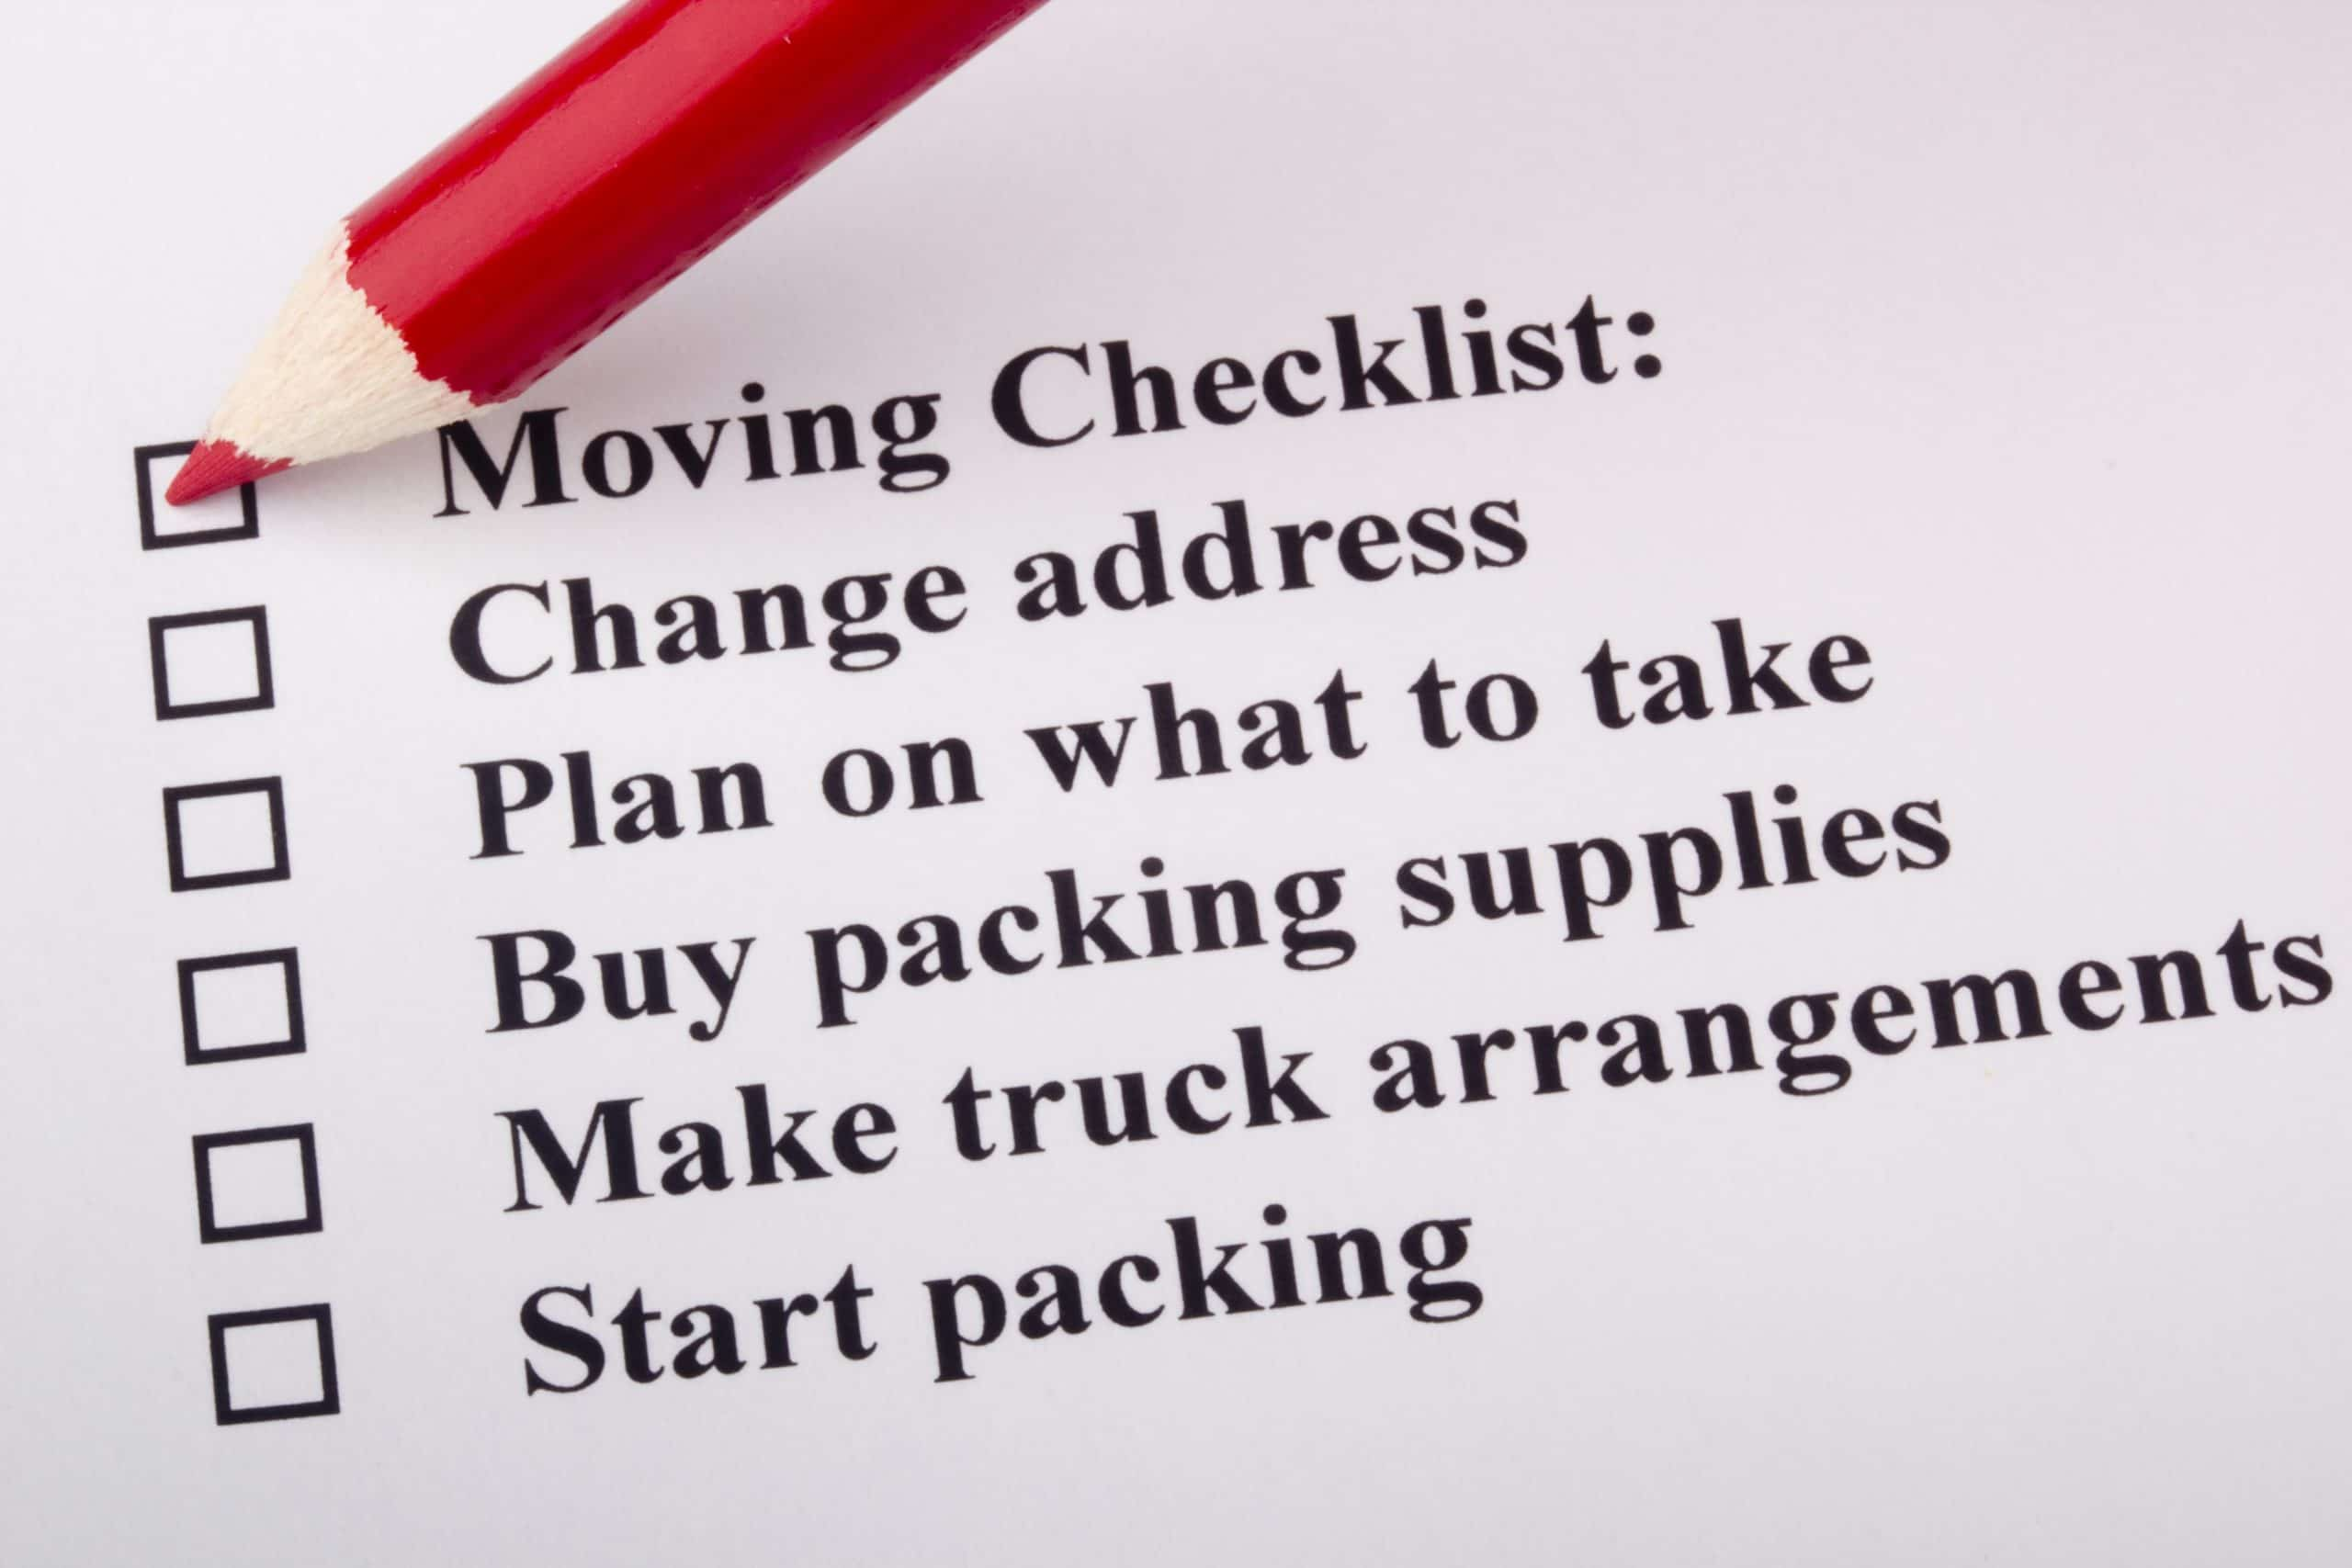 Moving Checklist - Things to Do Before Hiring a Moving Company - Get Your Quote